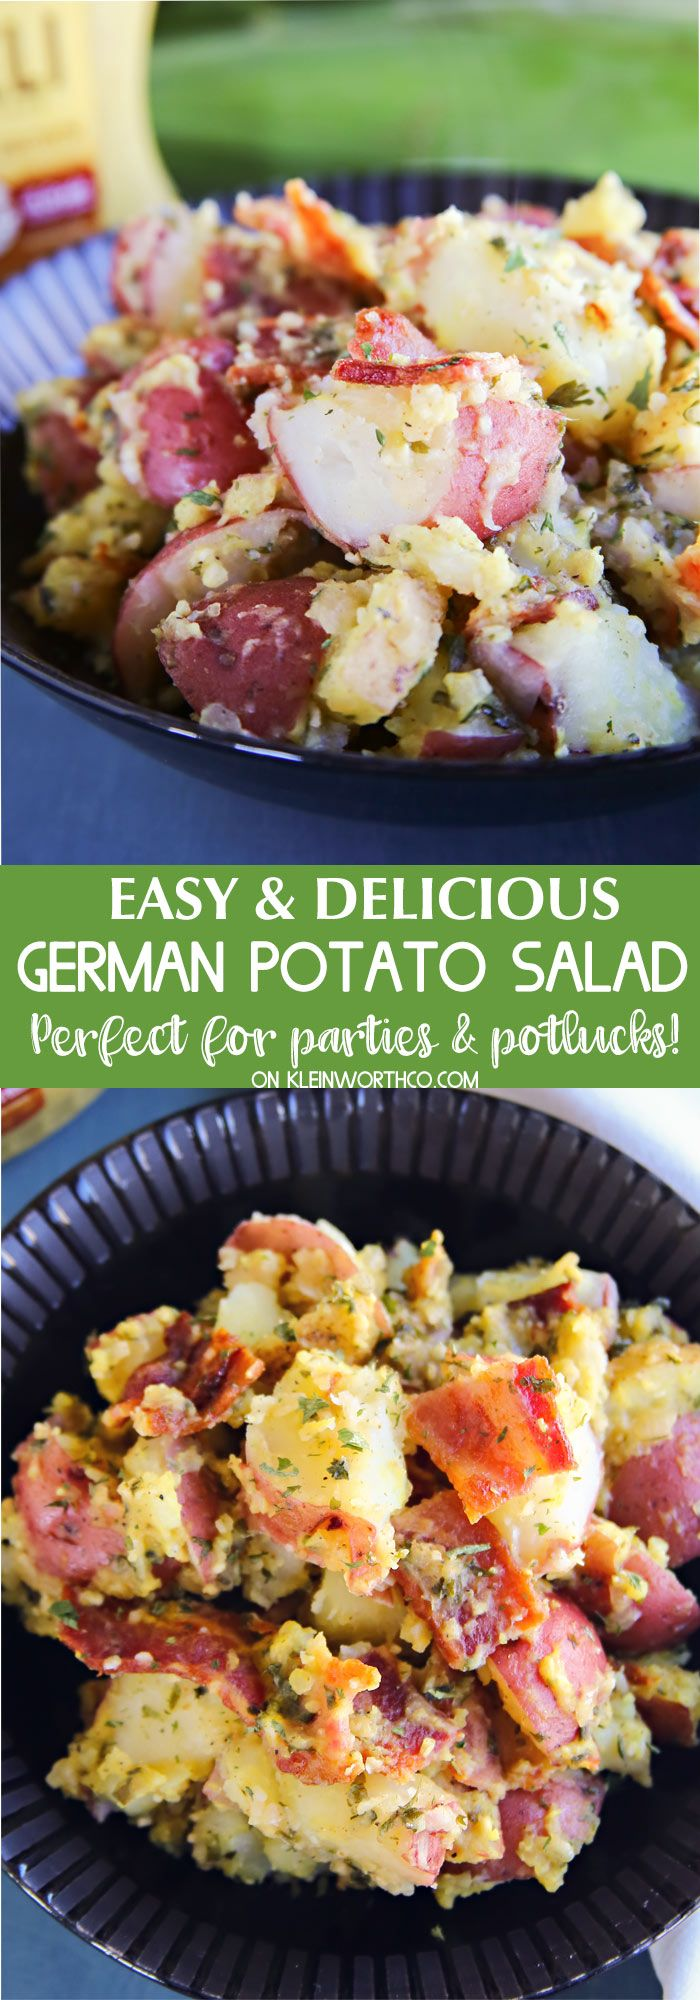 German Potato Salad Recipe is the perfect pairing to every BBQ favorite. Spicy, tangy & delicious. It's the recipe to bring to all your parties & potlucks.